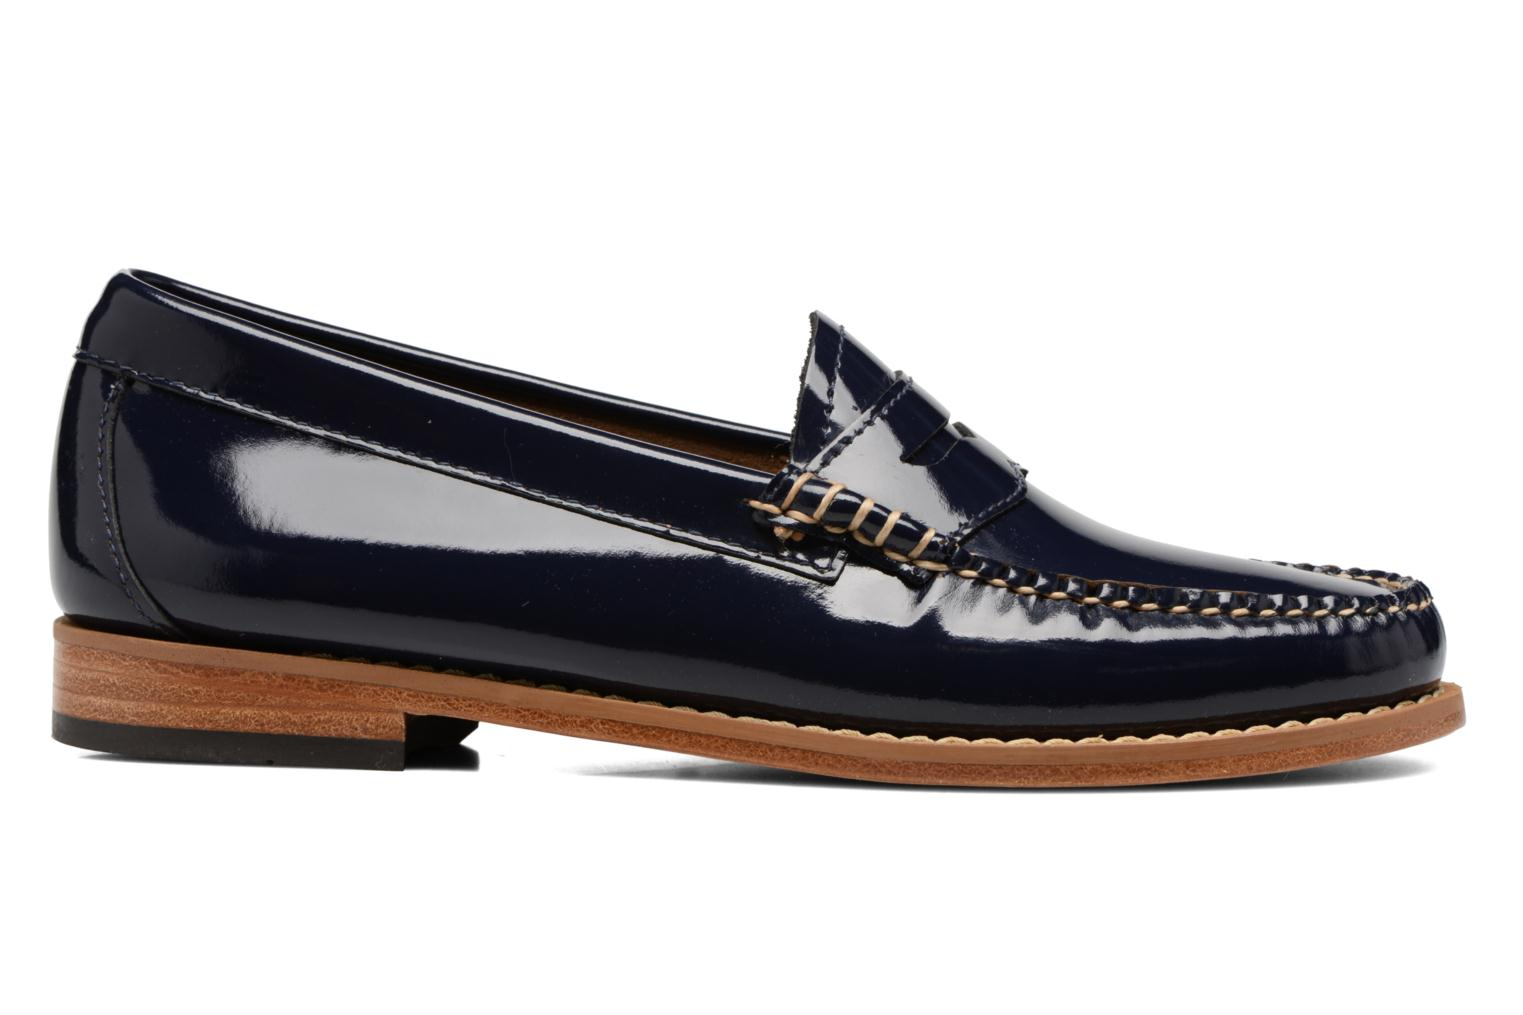 Weejun WMN Penny Wheel 1ST Navy Patent Leather